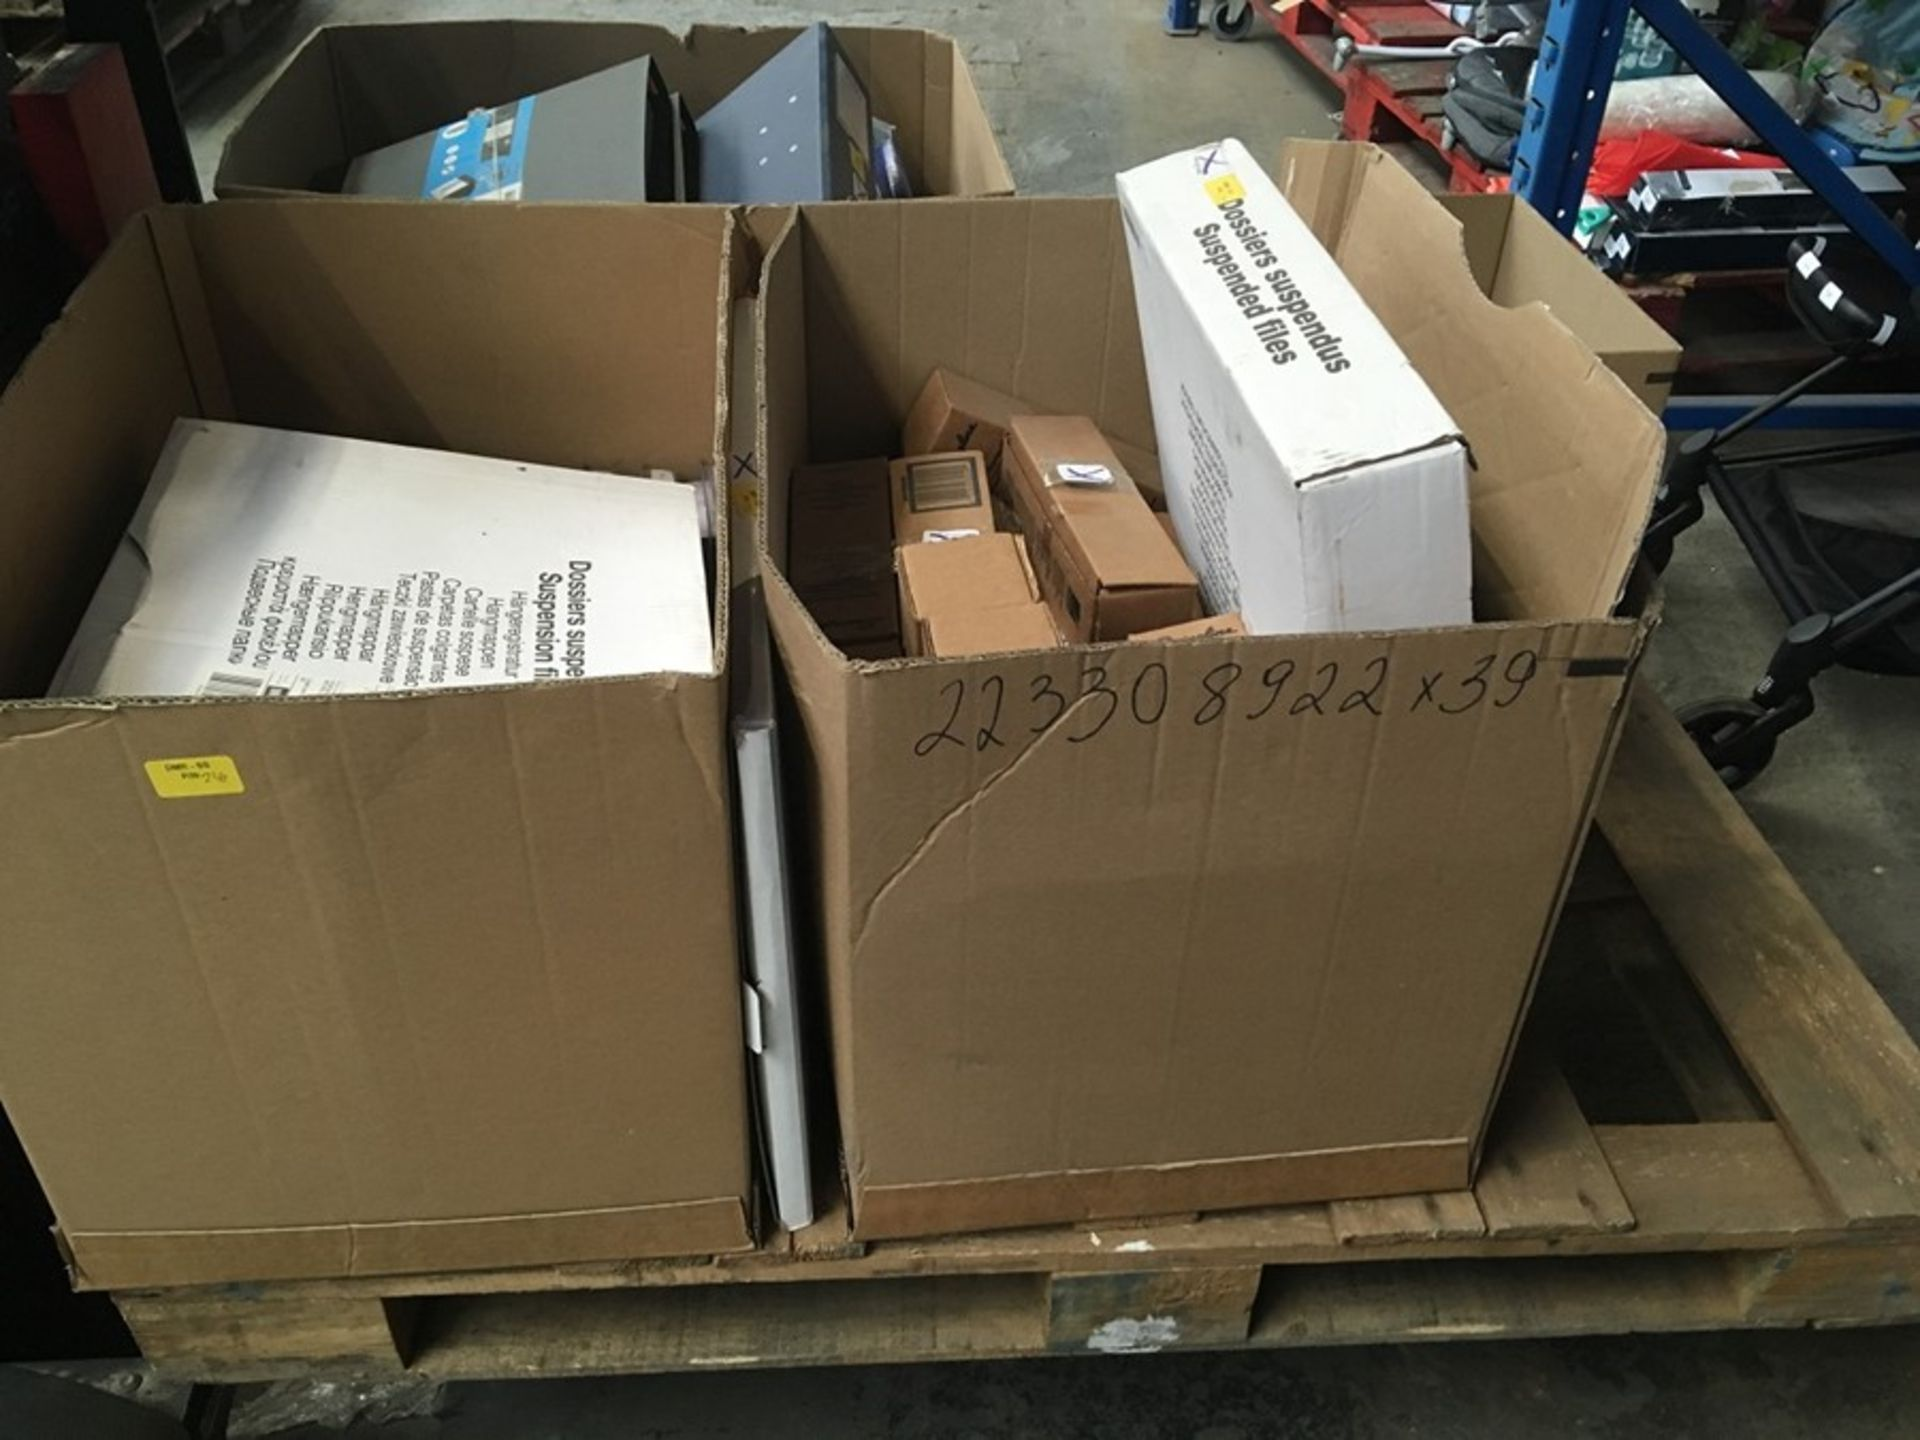 Lotto 36 - 1 LOT TO CONTAIN ASSORTED ITEMS / INCLUDES FILES, SOAP DISPENSERS, MONITOR CABLES & SHREDDER OIL /